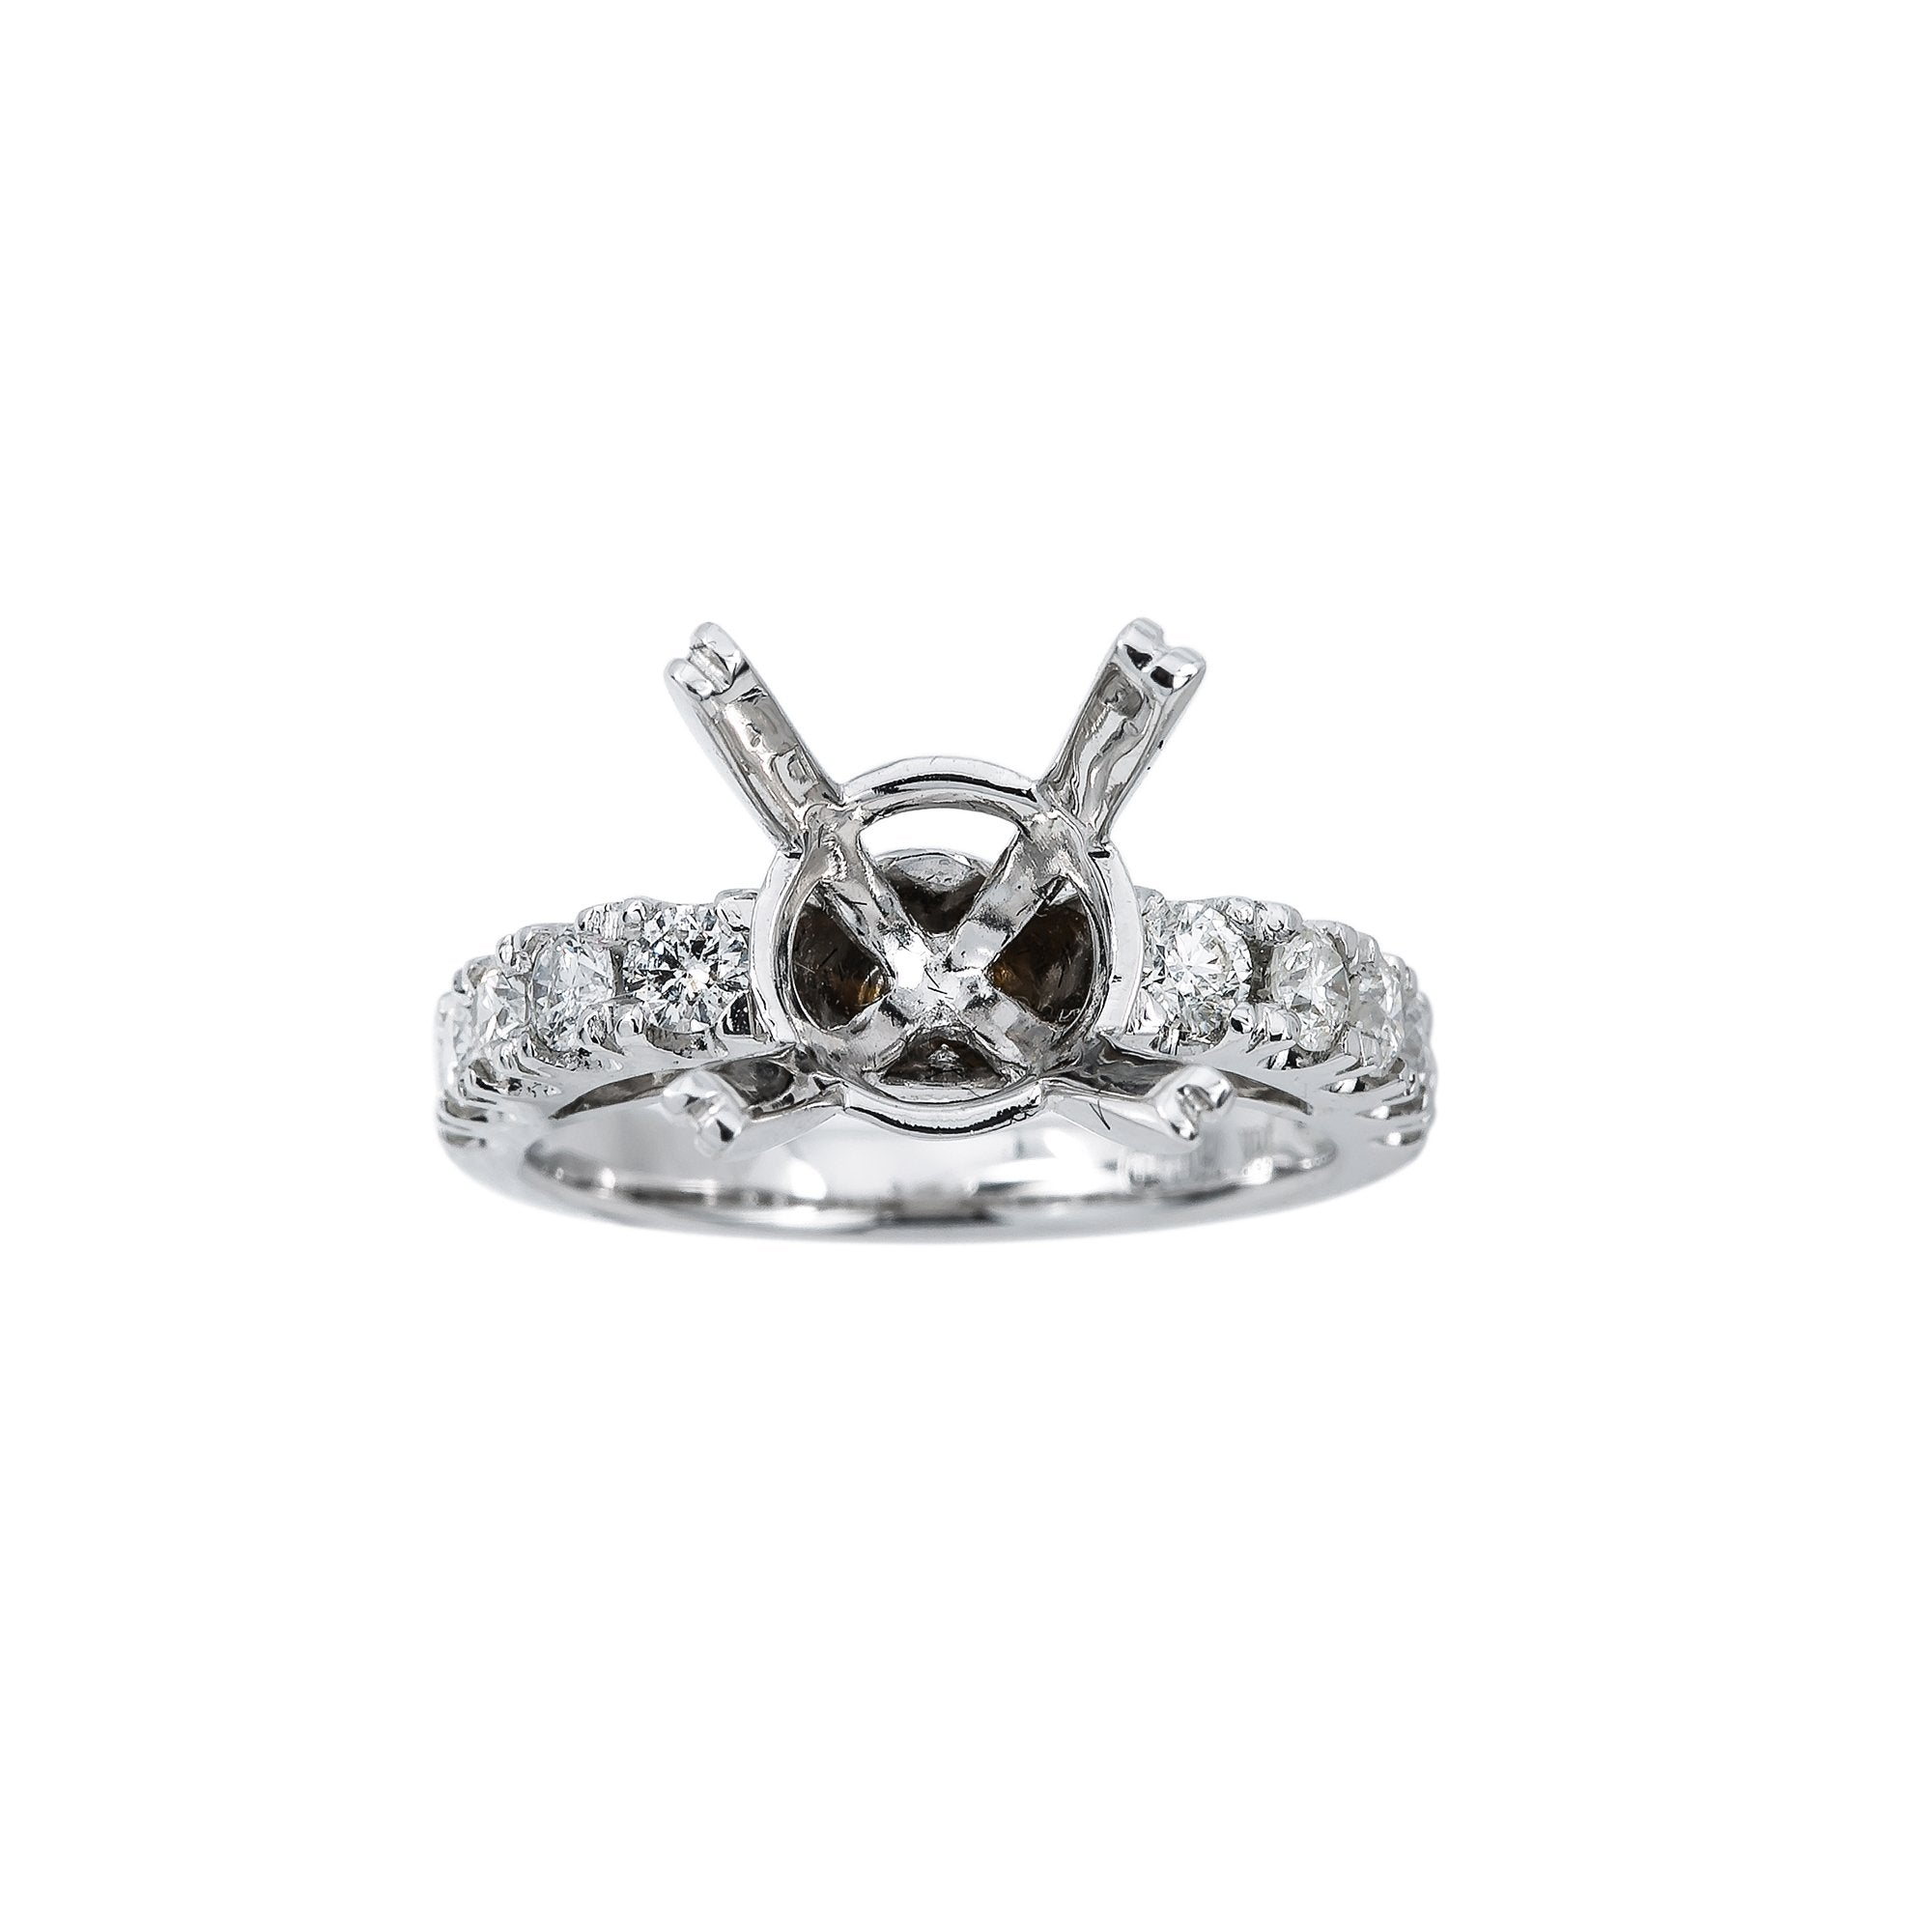 18K White Gold BJ8415R4 Women's Ring With 0.86 CT Diamonds